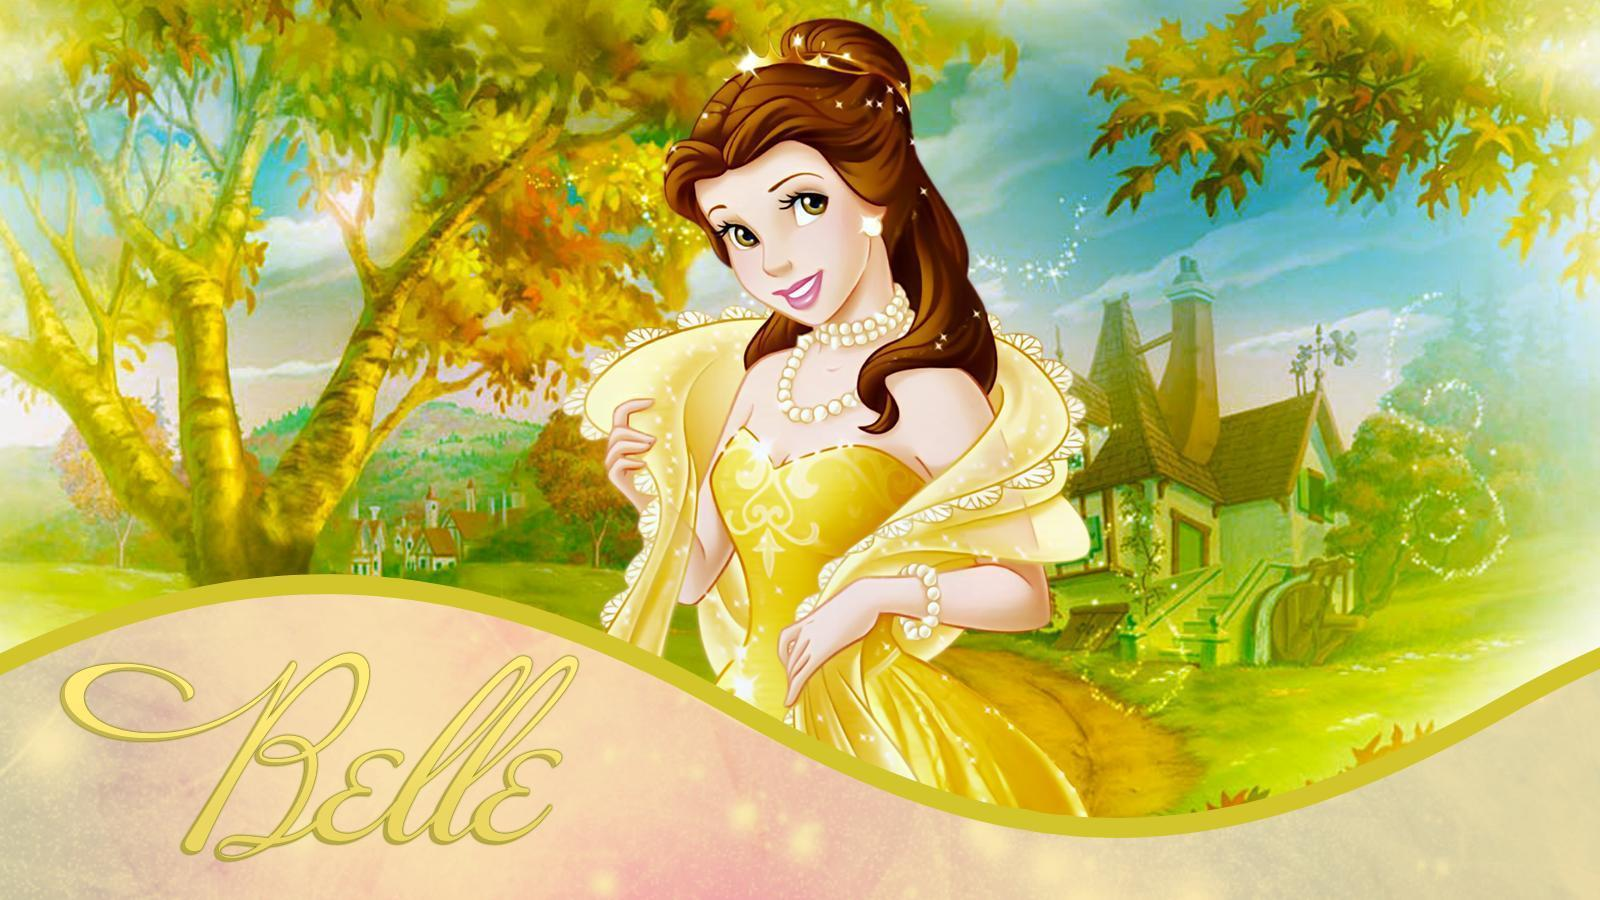 Princess Belle Wallpapers Wallpaper Cave